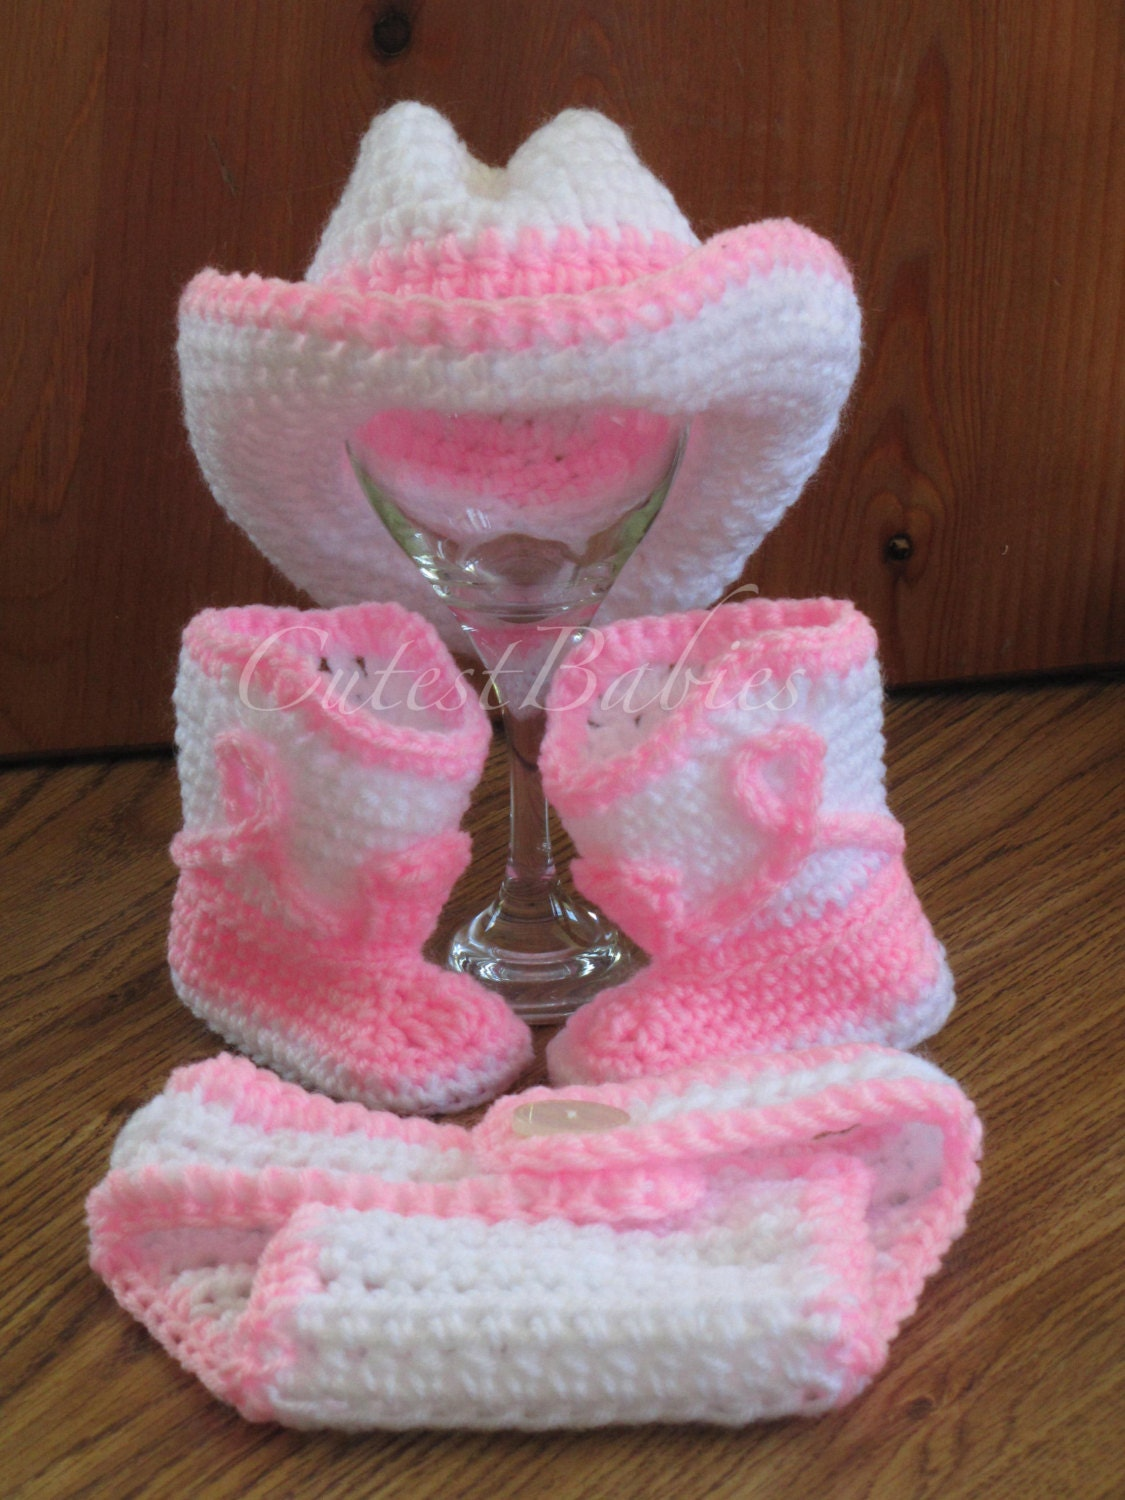 Free Crochet Patterns For Baby Owl Hat : Newborn Baby Crochet Cowboy/ Cowgirl Hat Boots & Diaper Cover